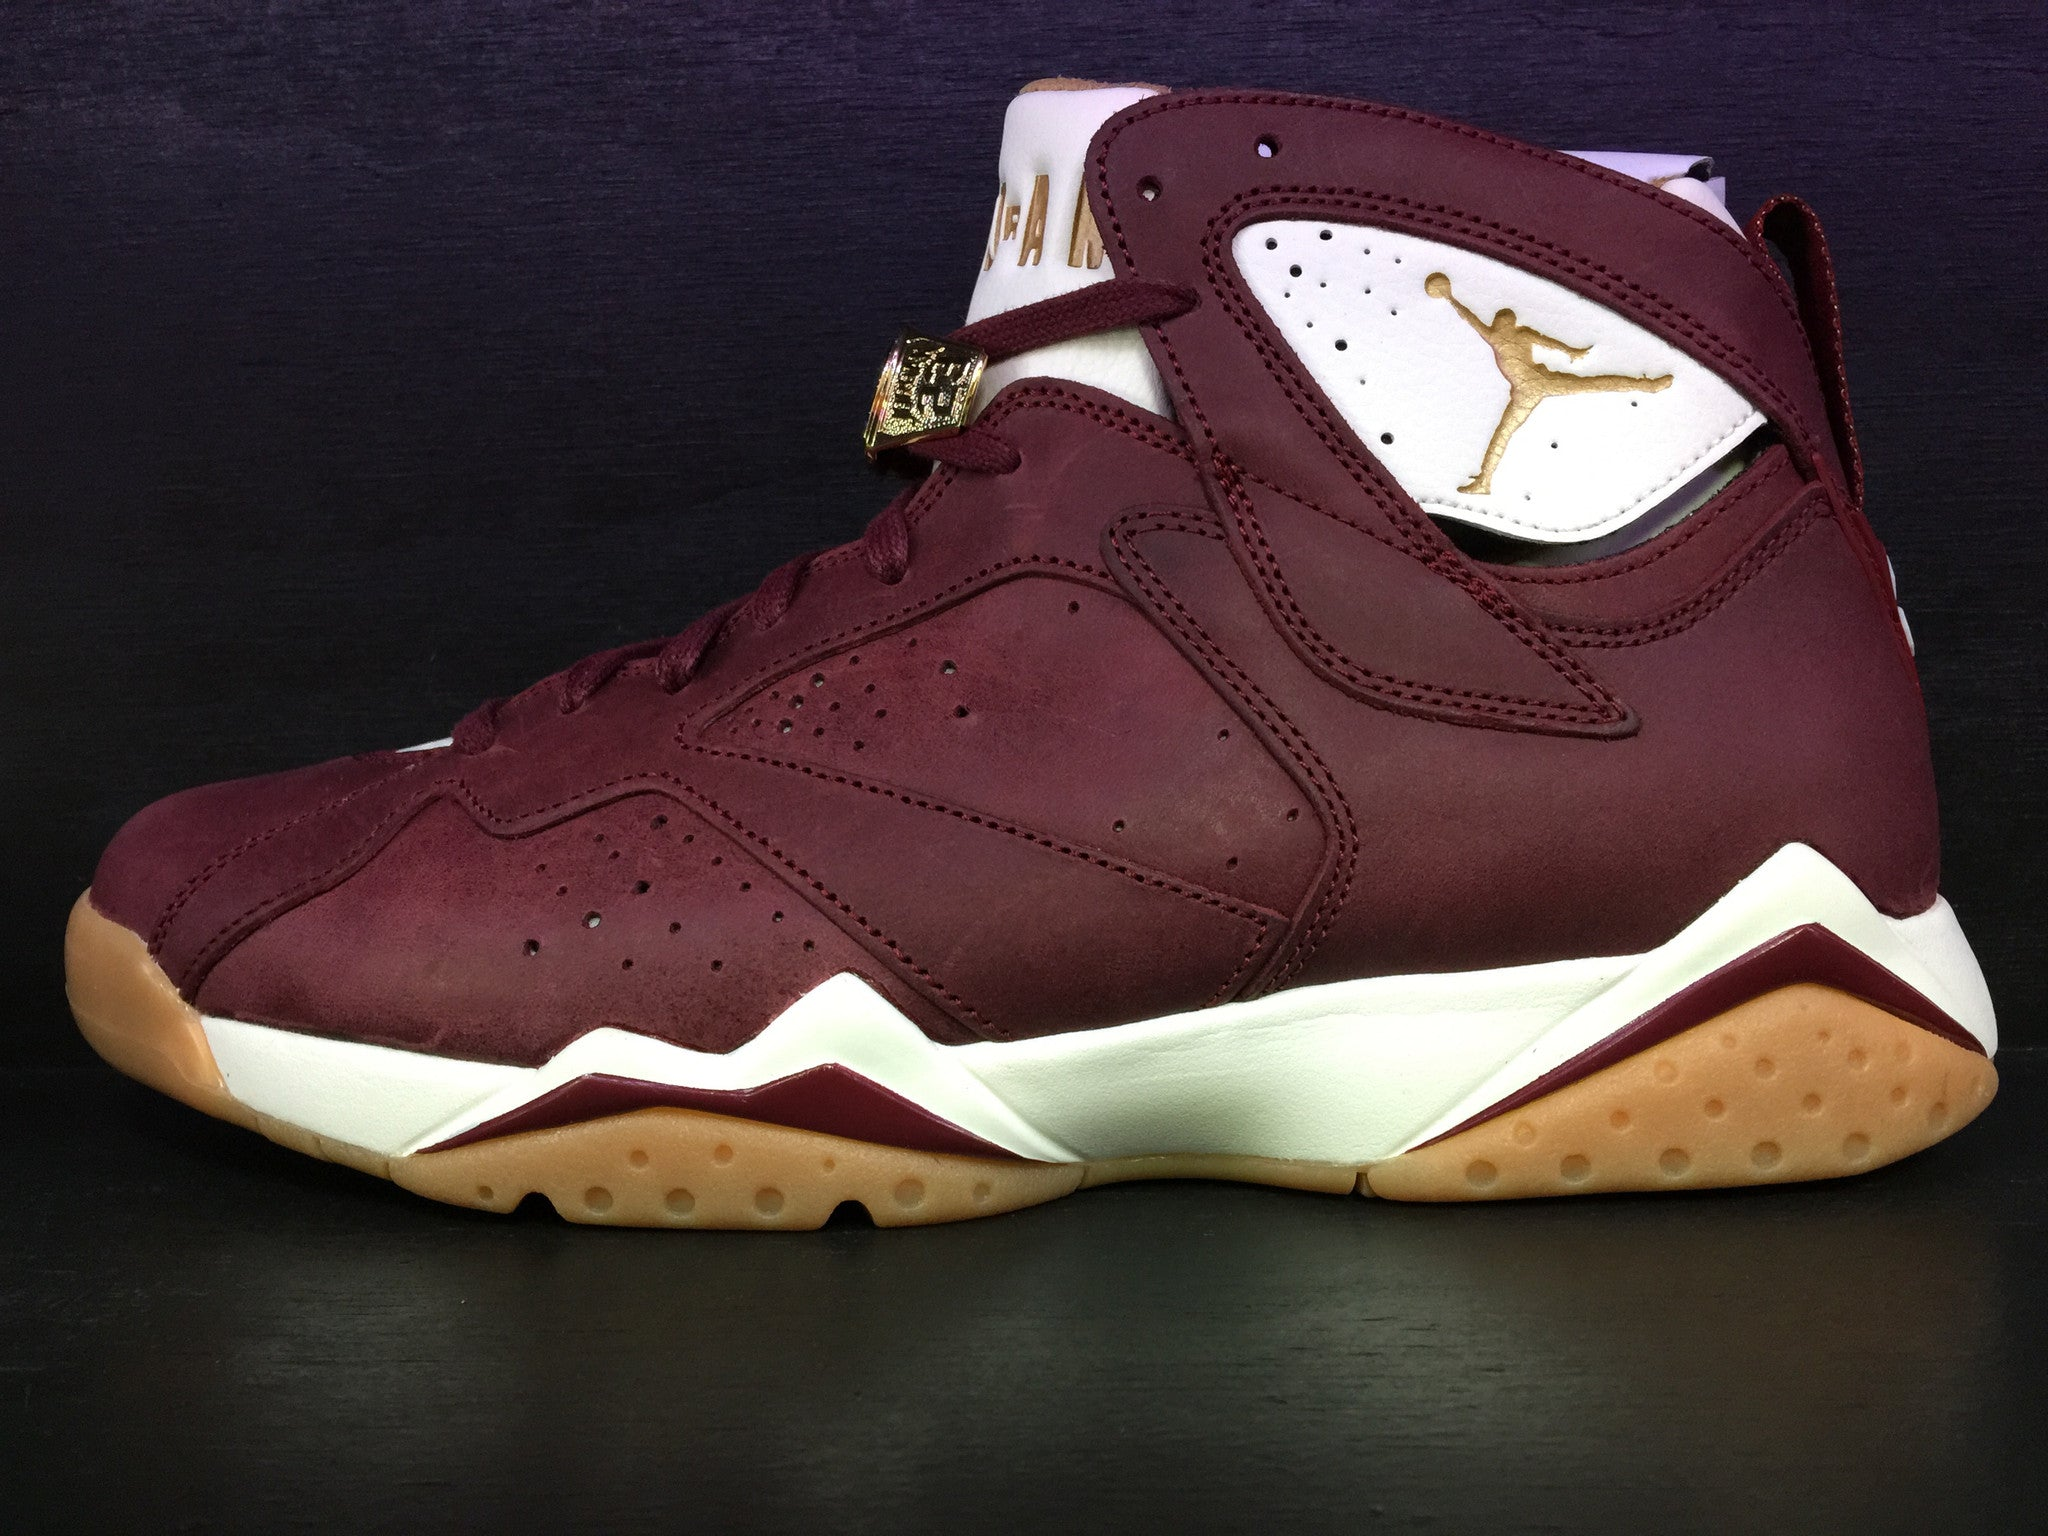 Air Jordan 7 Retro C&C 'Cigar'